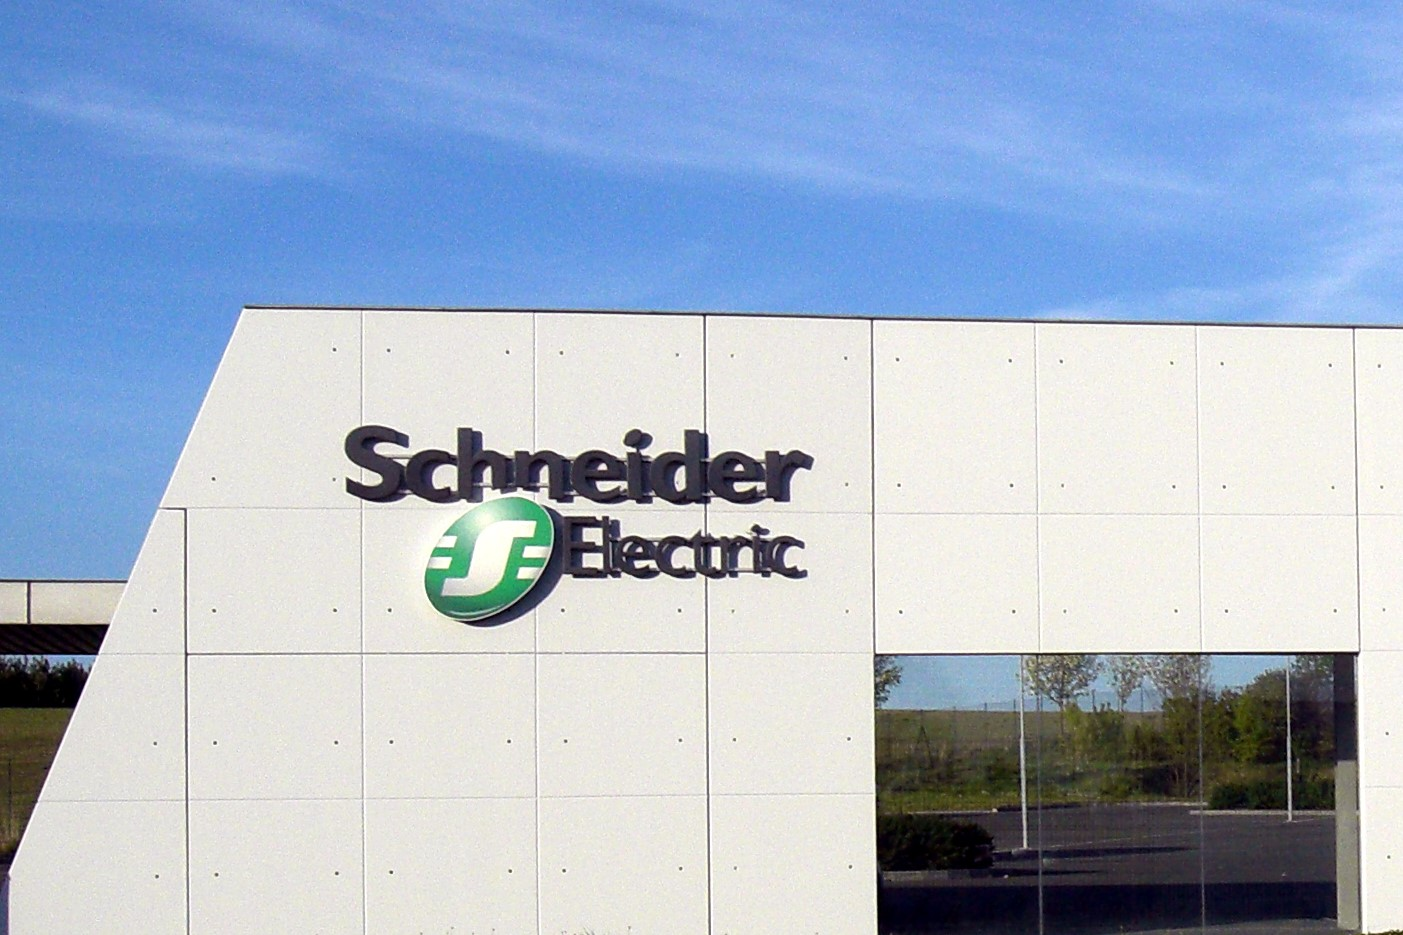 schneider_electric_factory.jpg